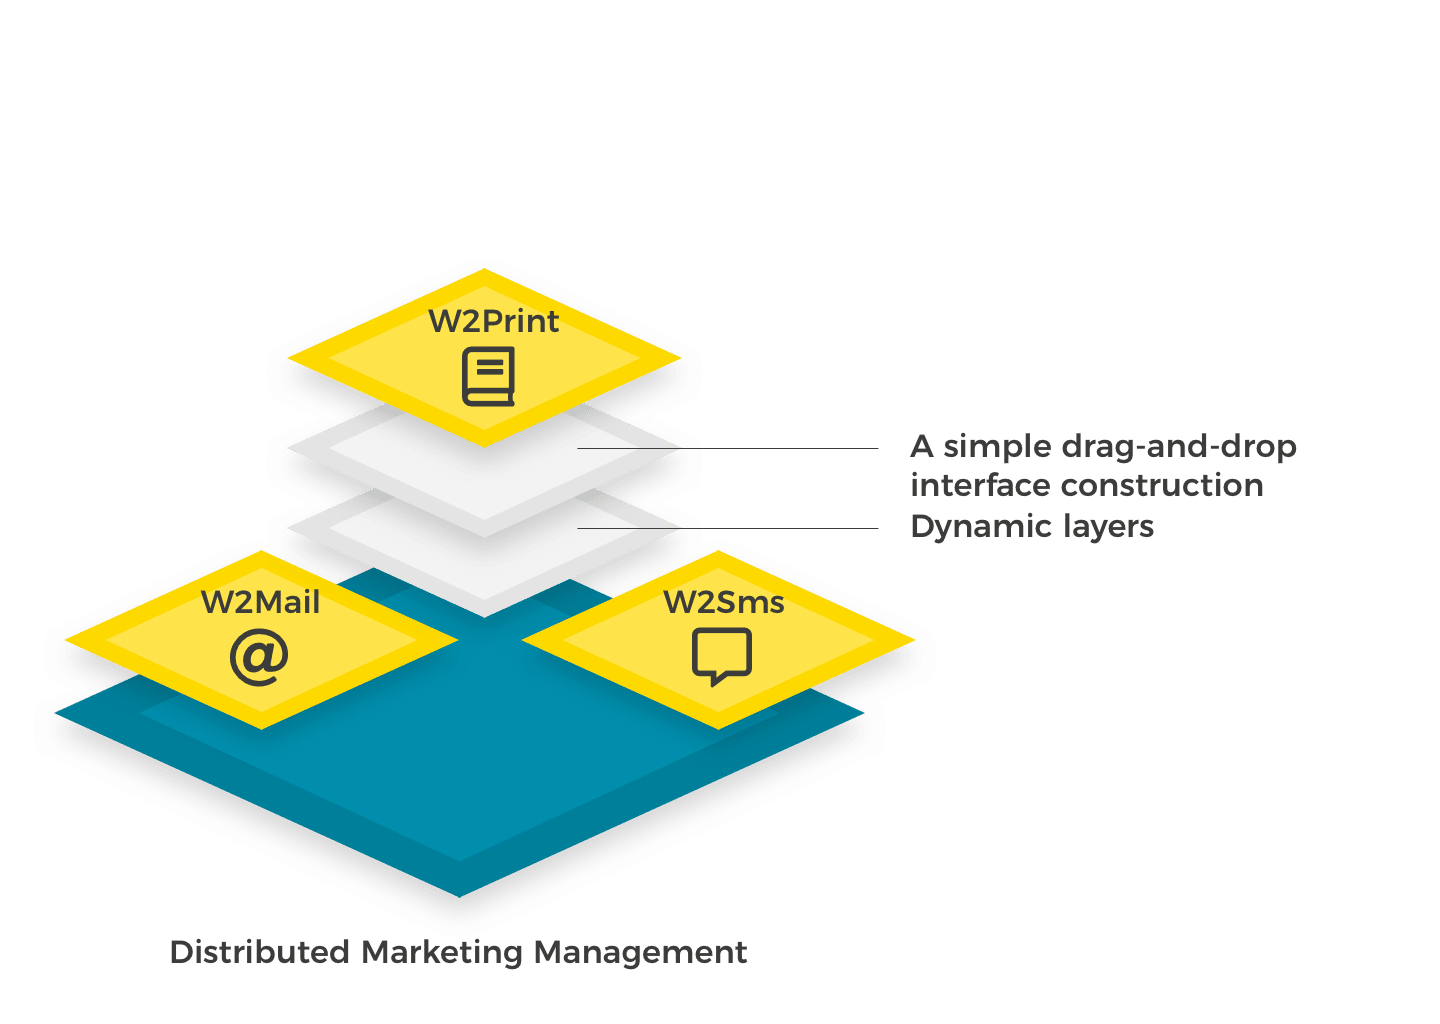 Wedia Digital Marketing Management service offer a simple solution for Web to Print